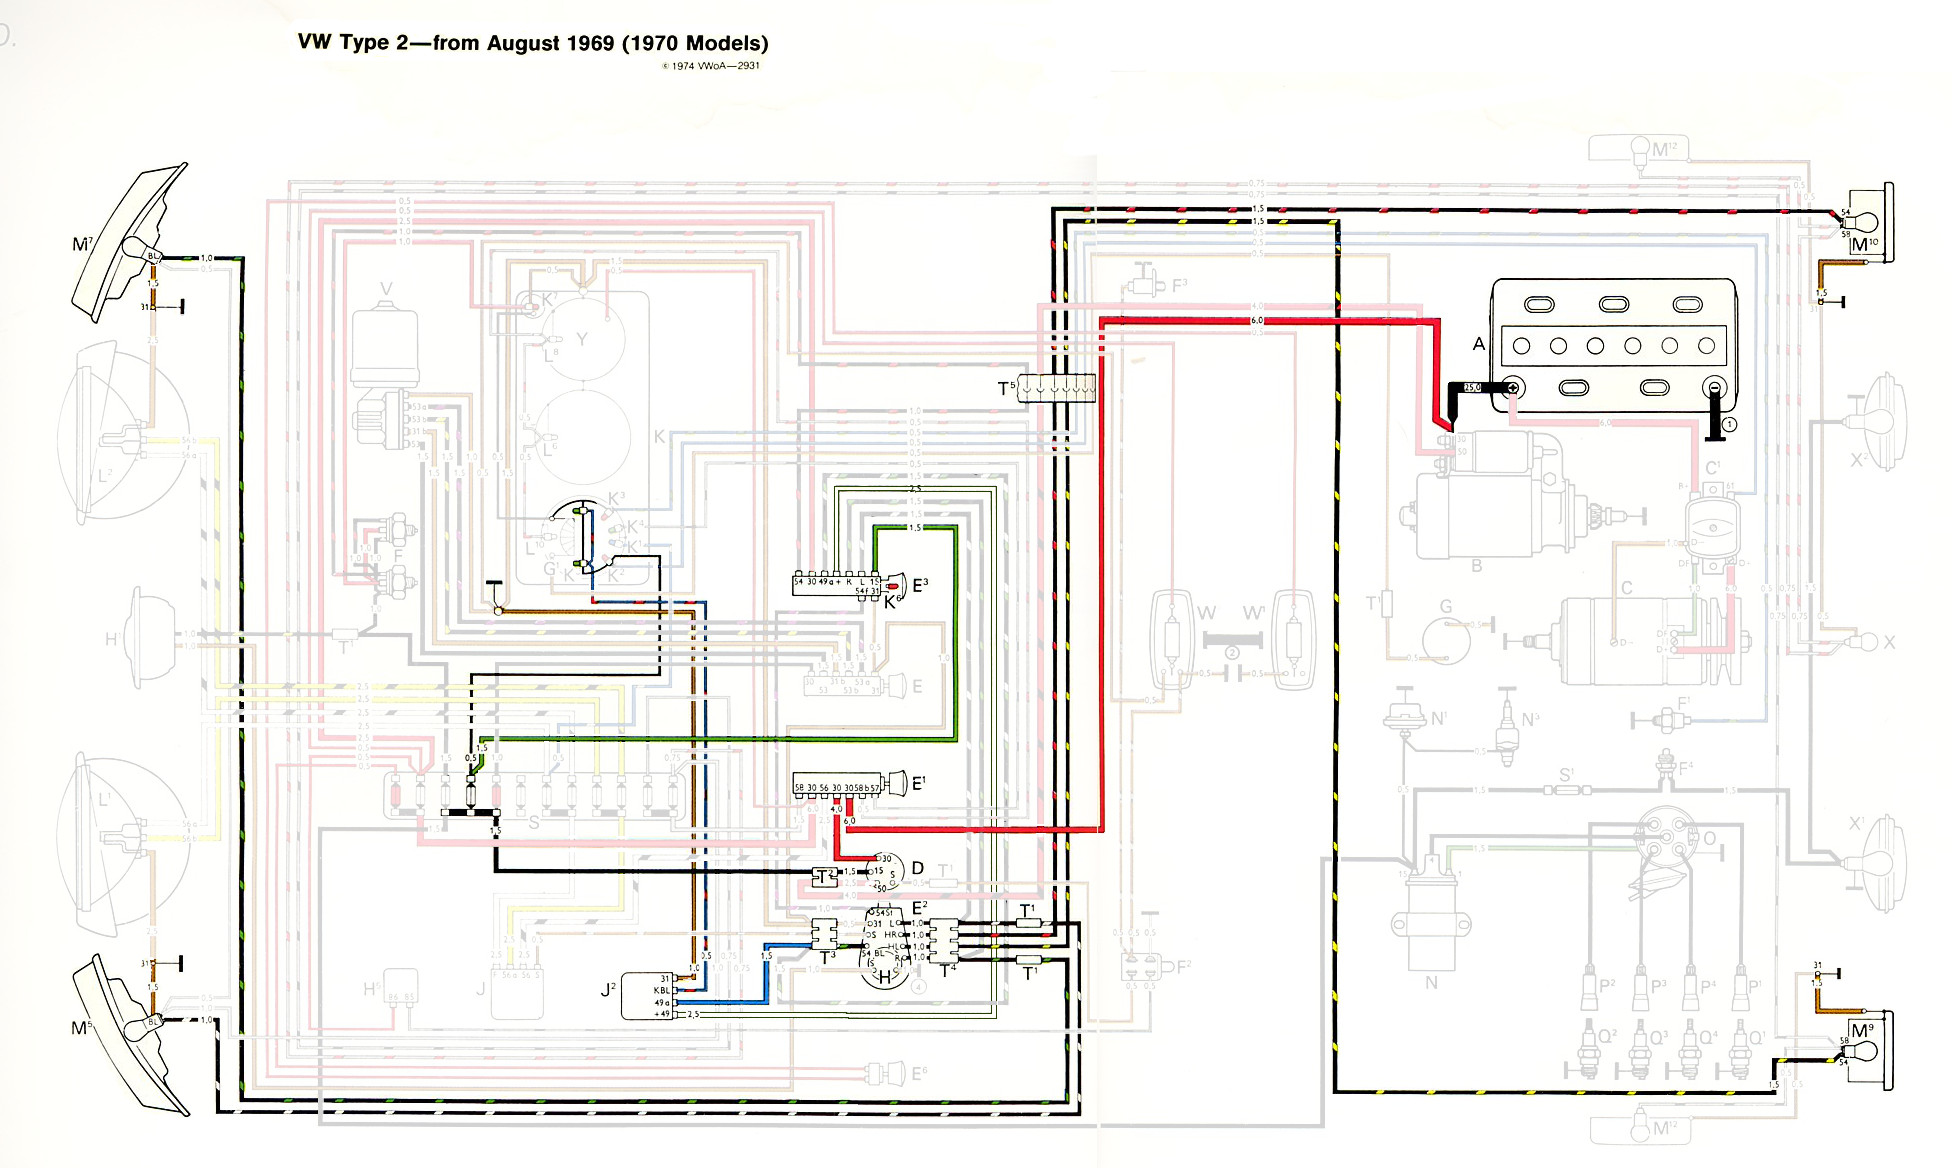 1970bus_signals 1970 vw beetle wiring diagram 1967 vw beetle wiring diagram Wiring Harness Diagram at crackthecode.co